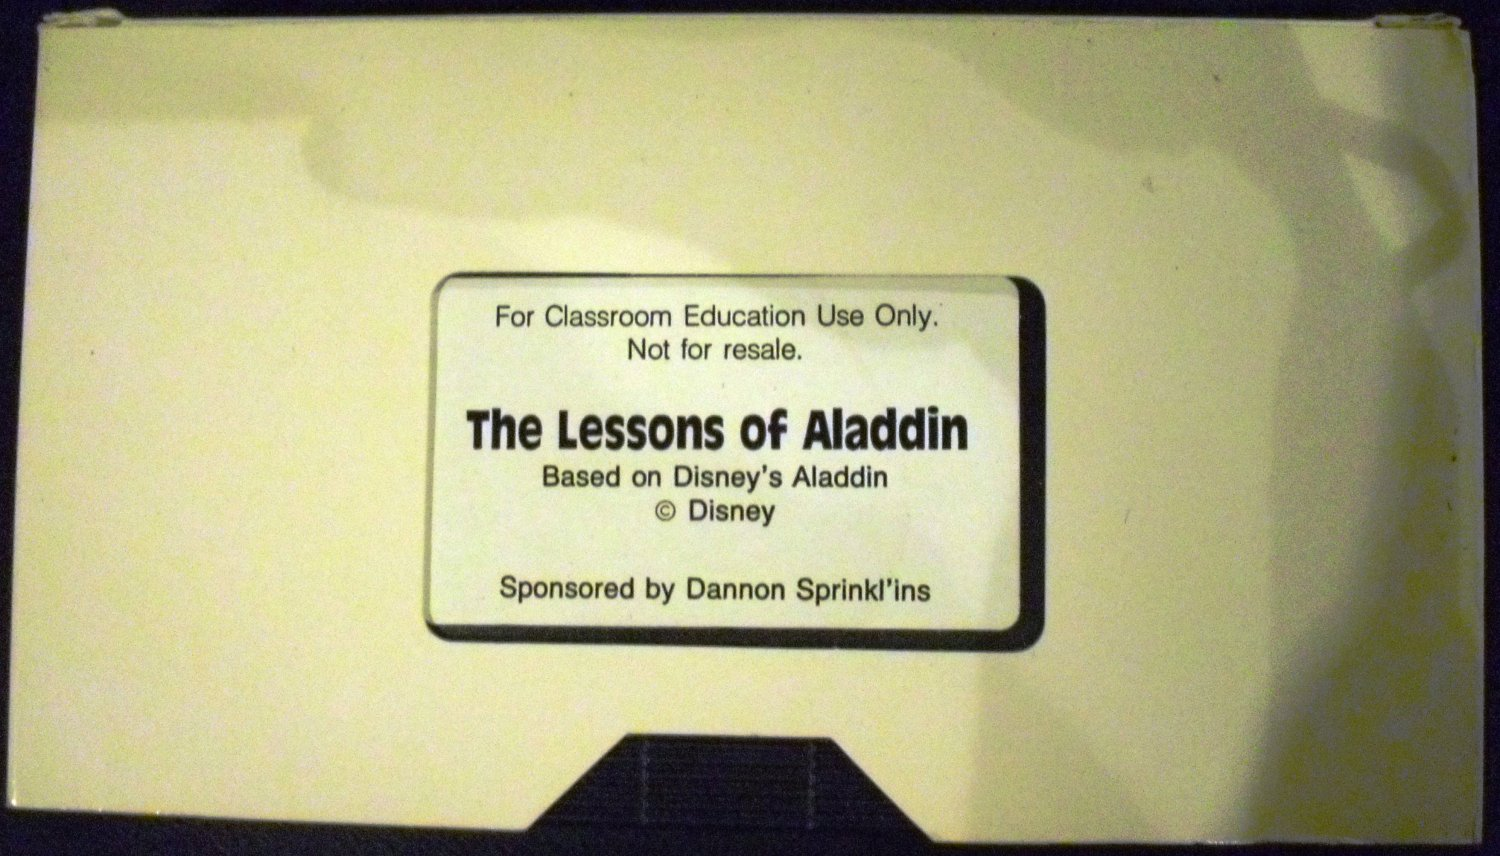 The Lessons of Aladdin, based on Disney's Aladdin (VHS) Sponsored by Dannon Sprinkl'ins